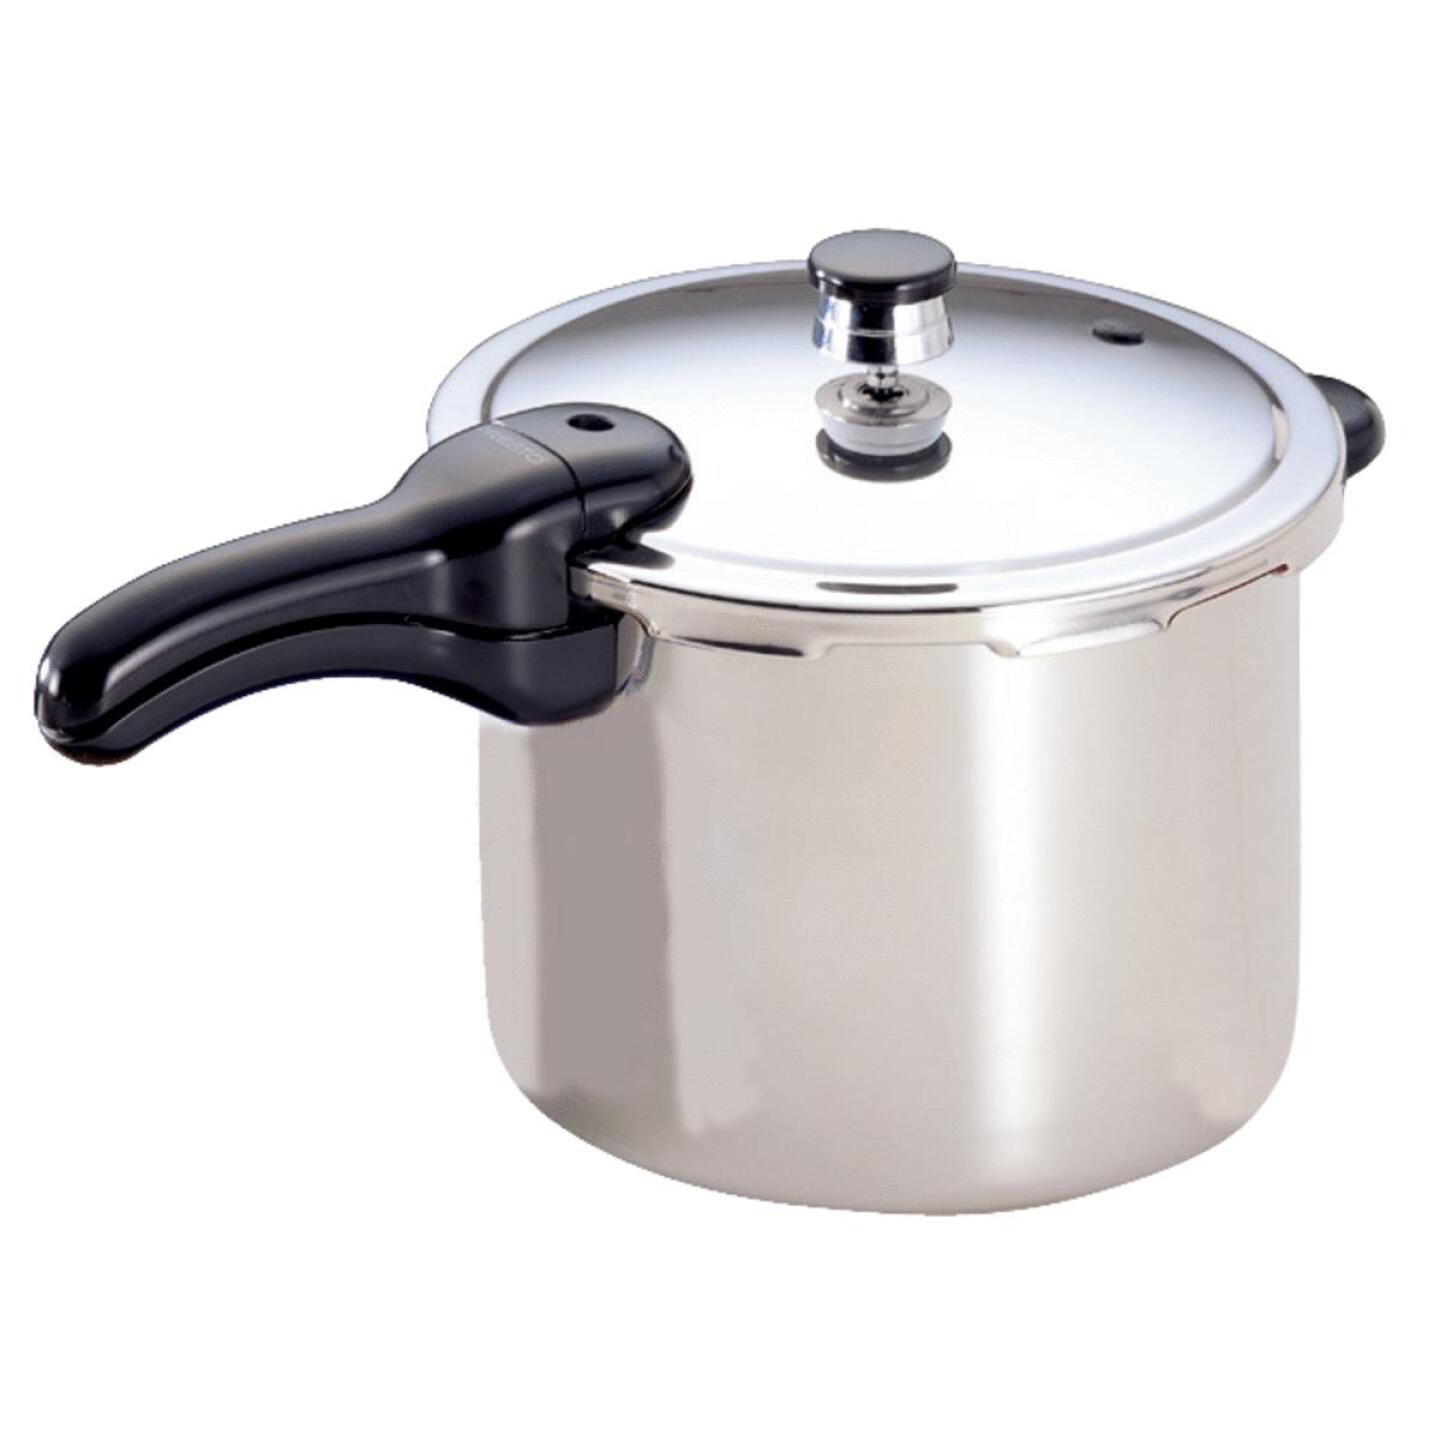 Presto 6 Qt. Stainless Steel Pressure Cooker Image 1